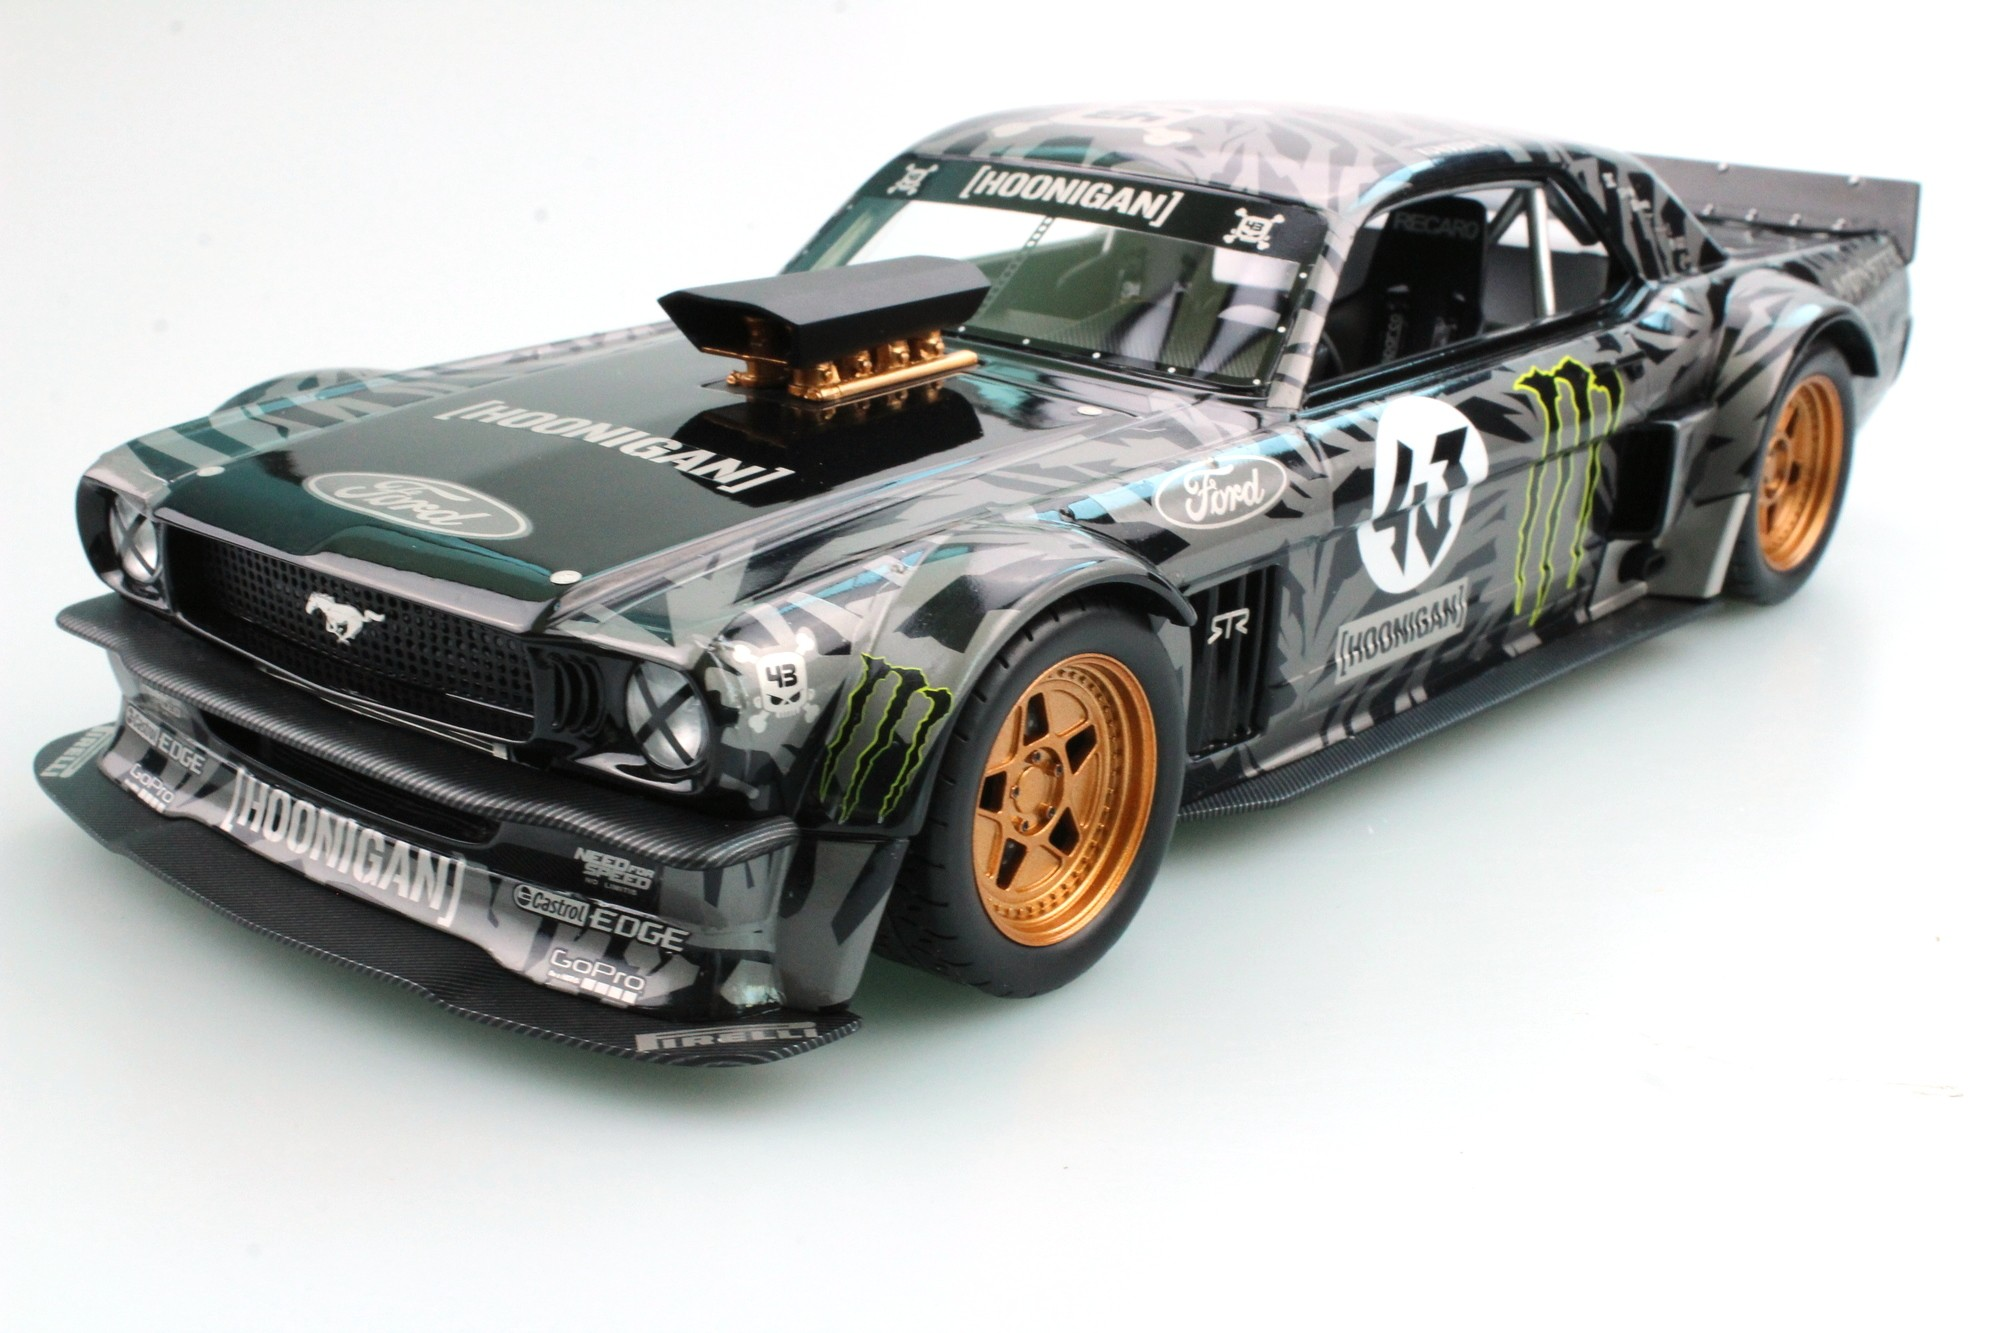 Top Marques Collectibles Ford Mustang 1965 Hoonigan, Ken ...